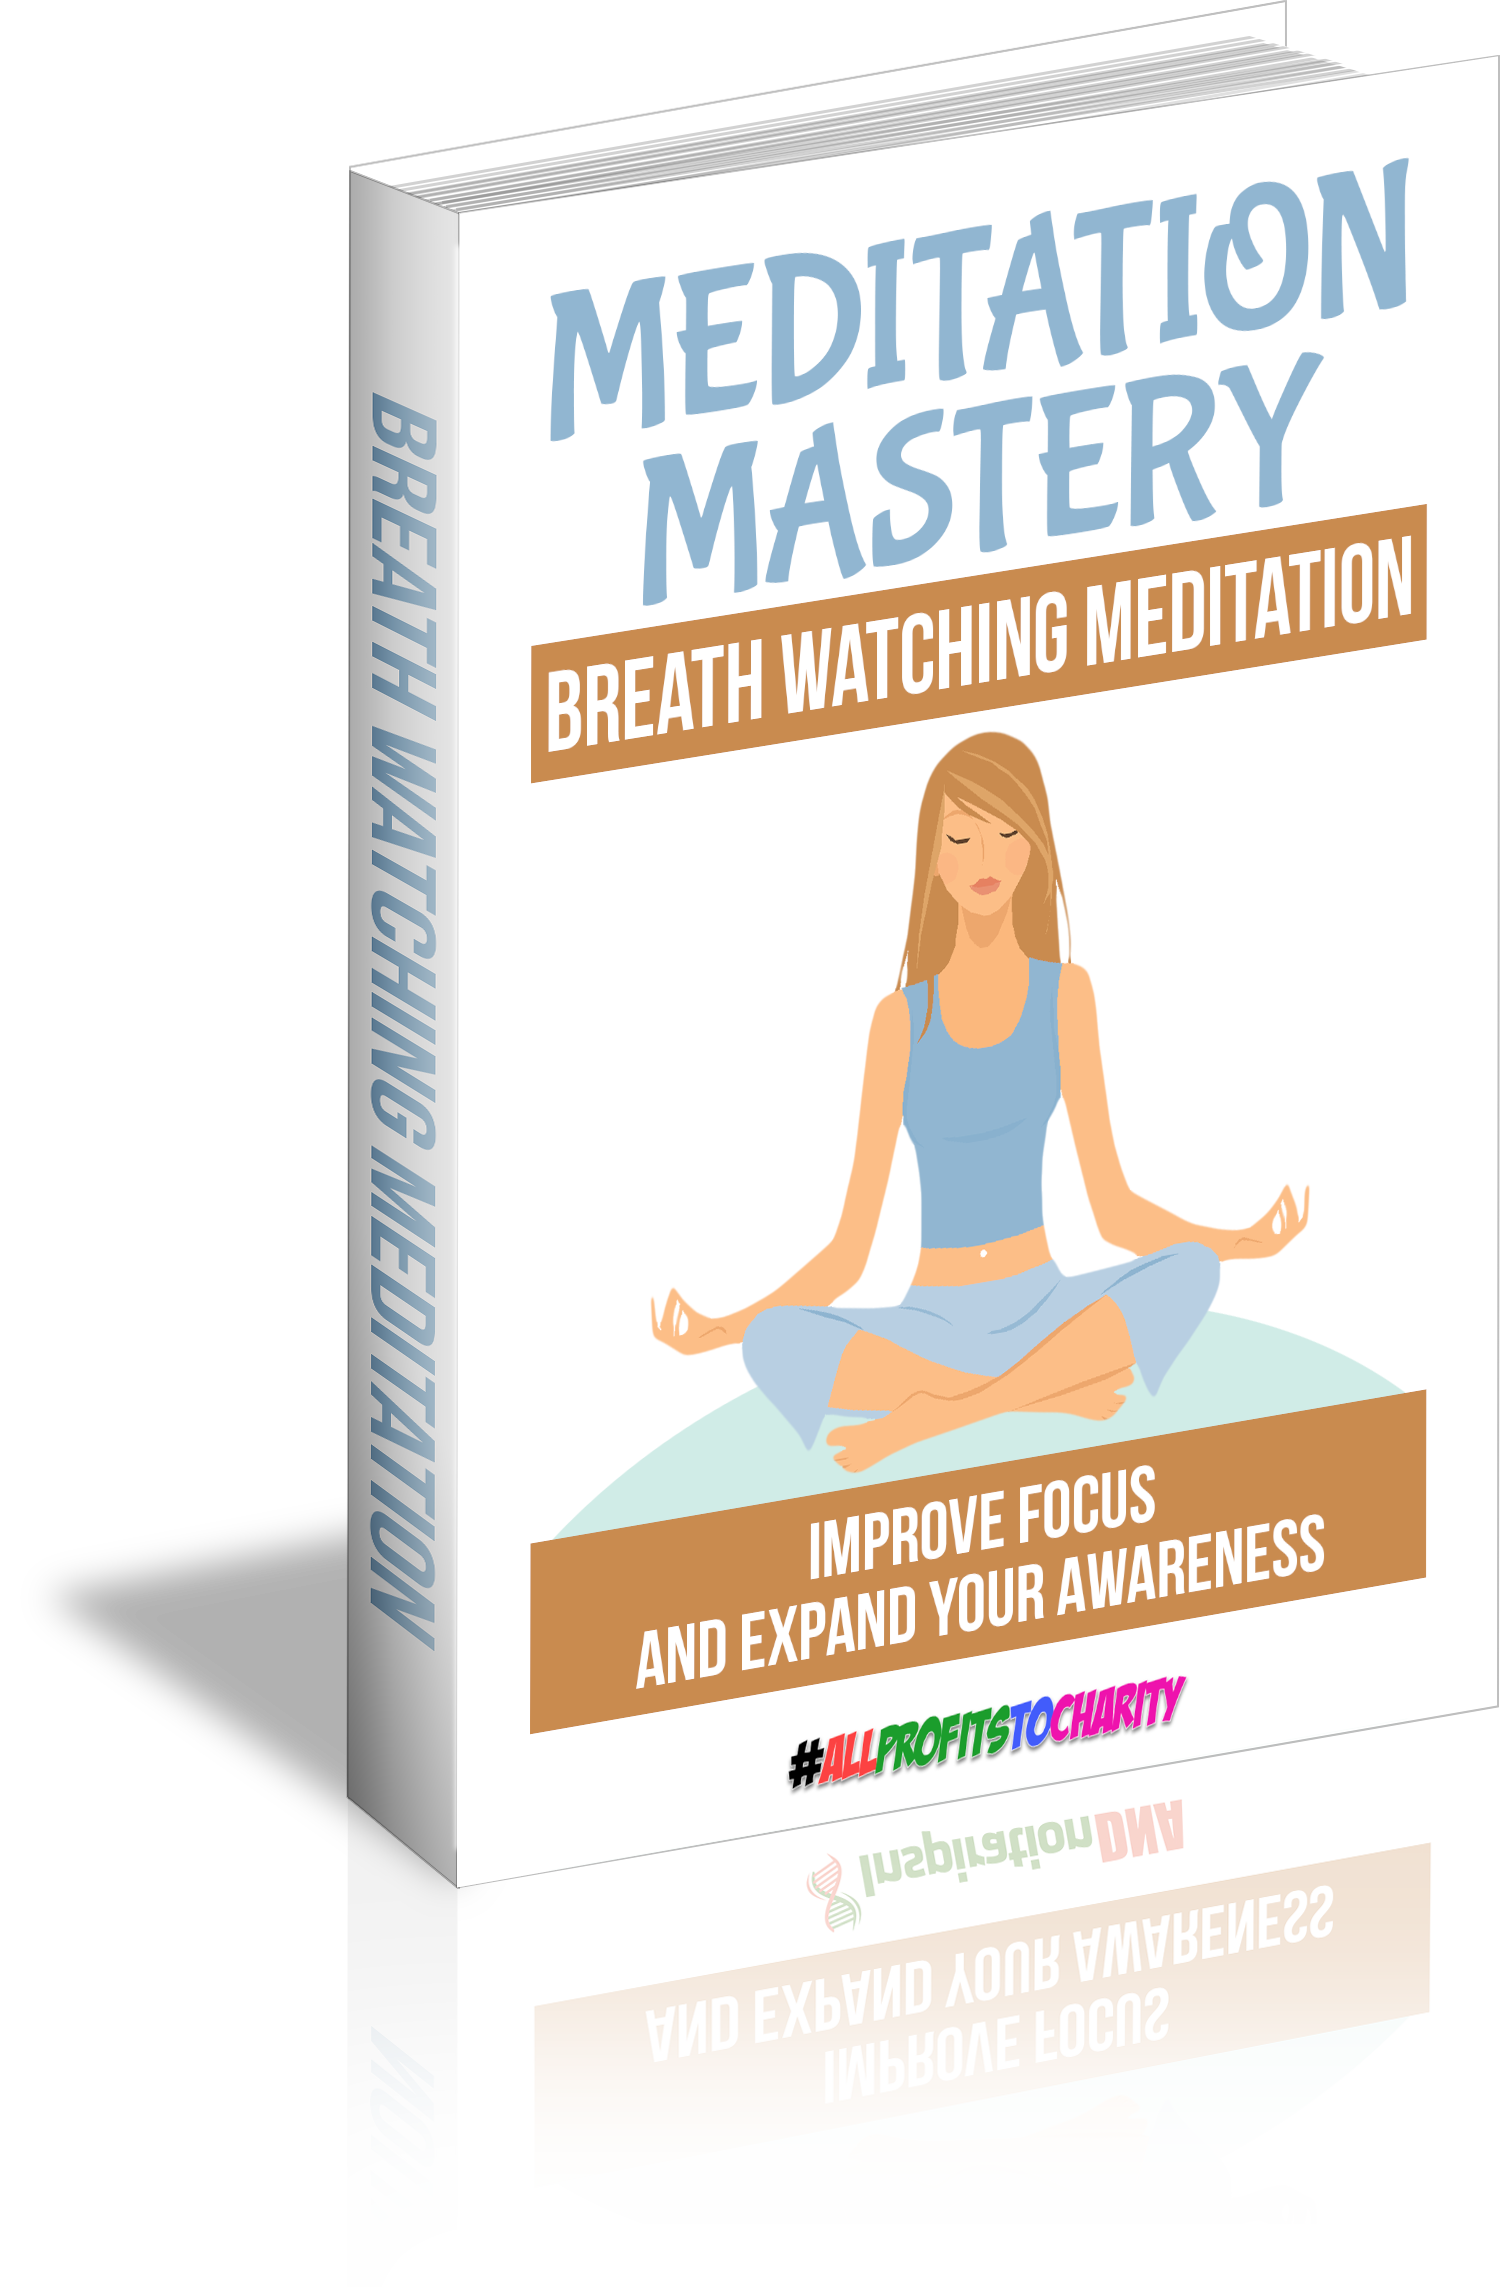 Breath Watching Meditation cover